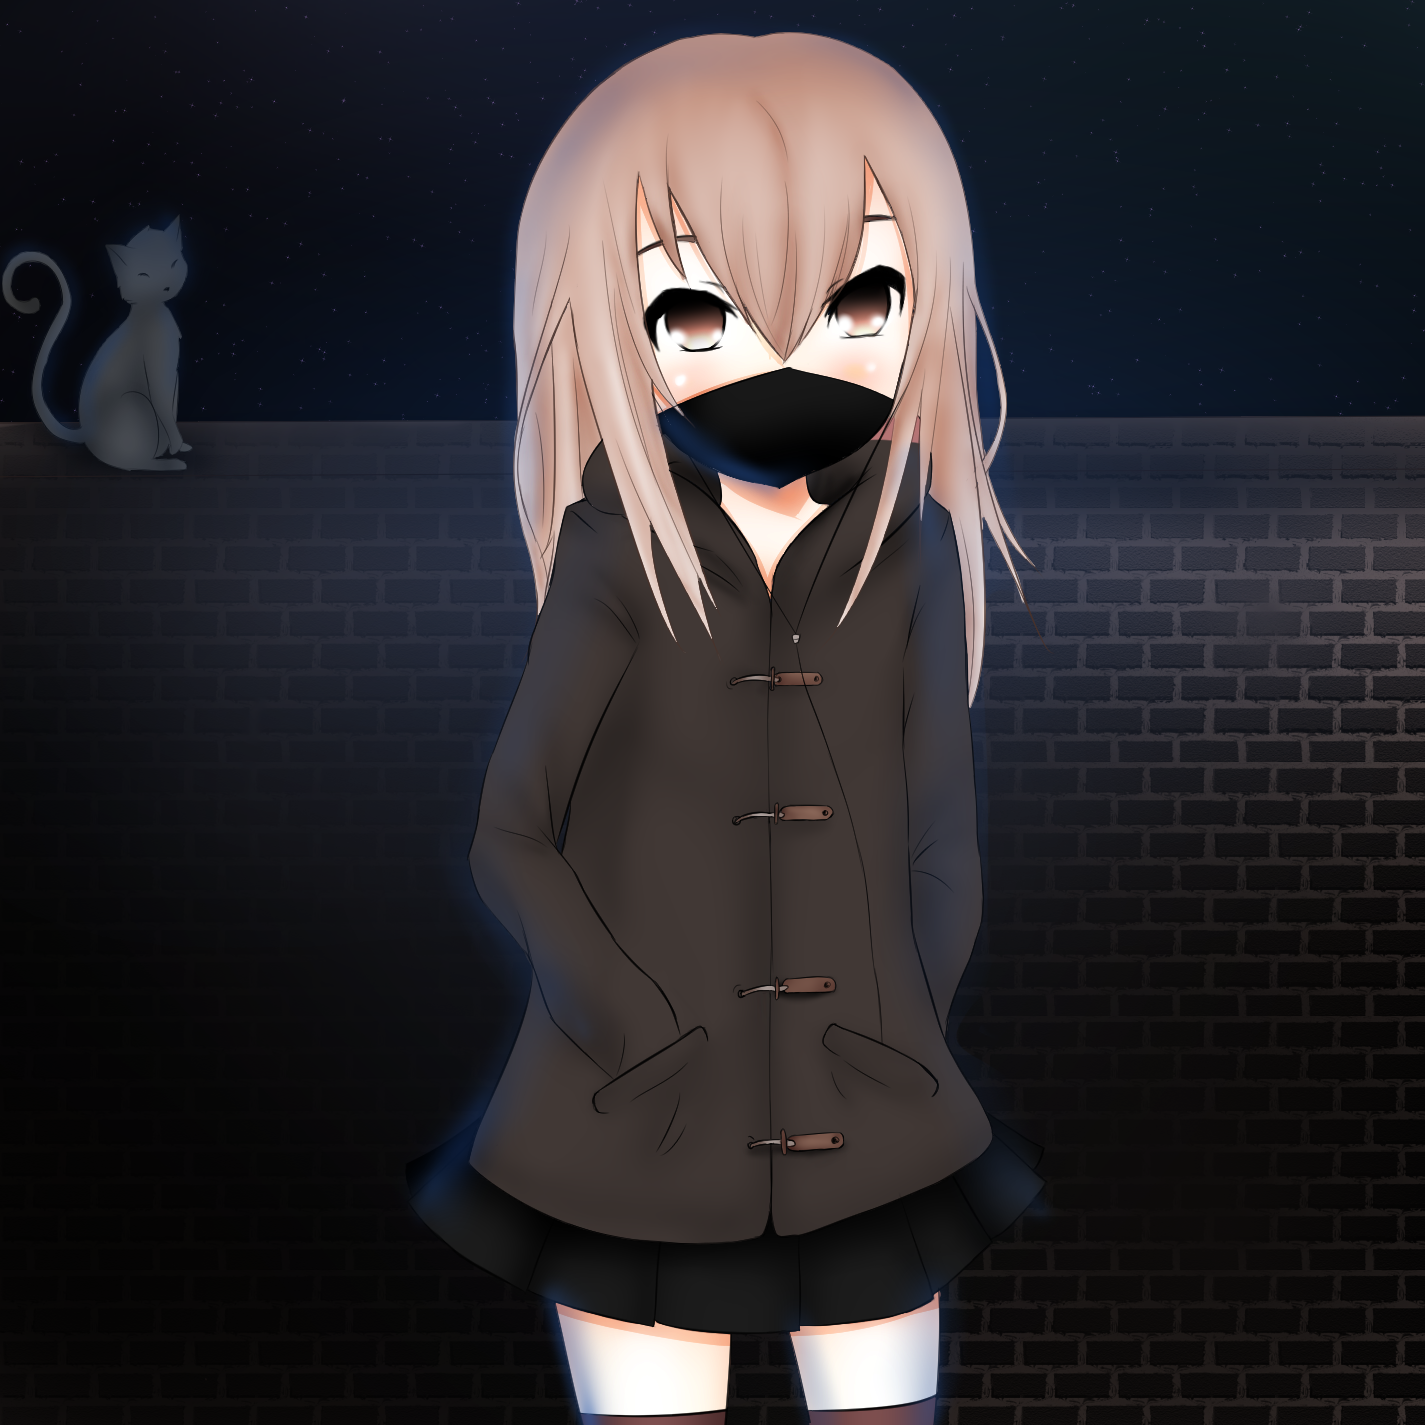 Anime girl with mask by TombieFox on DeviantArt